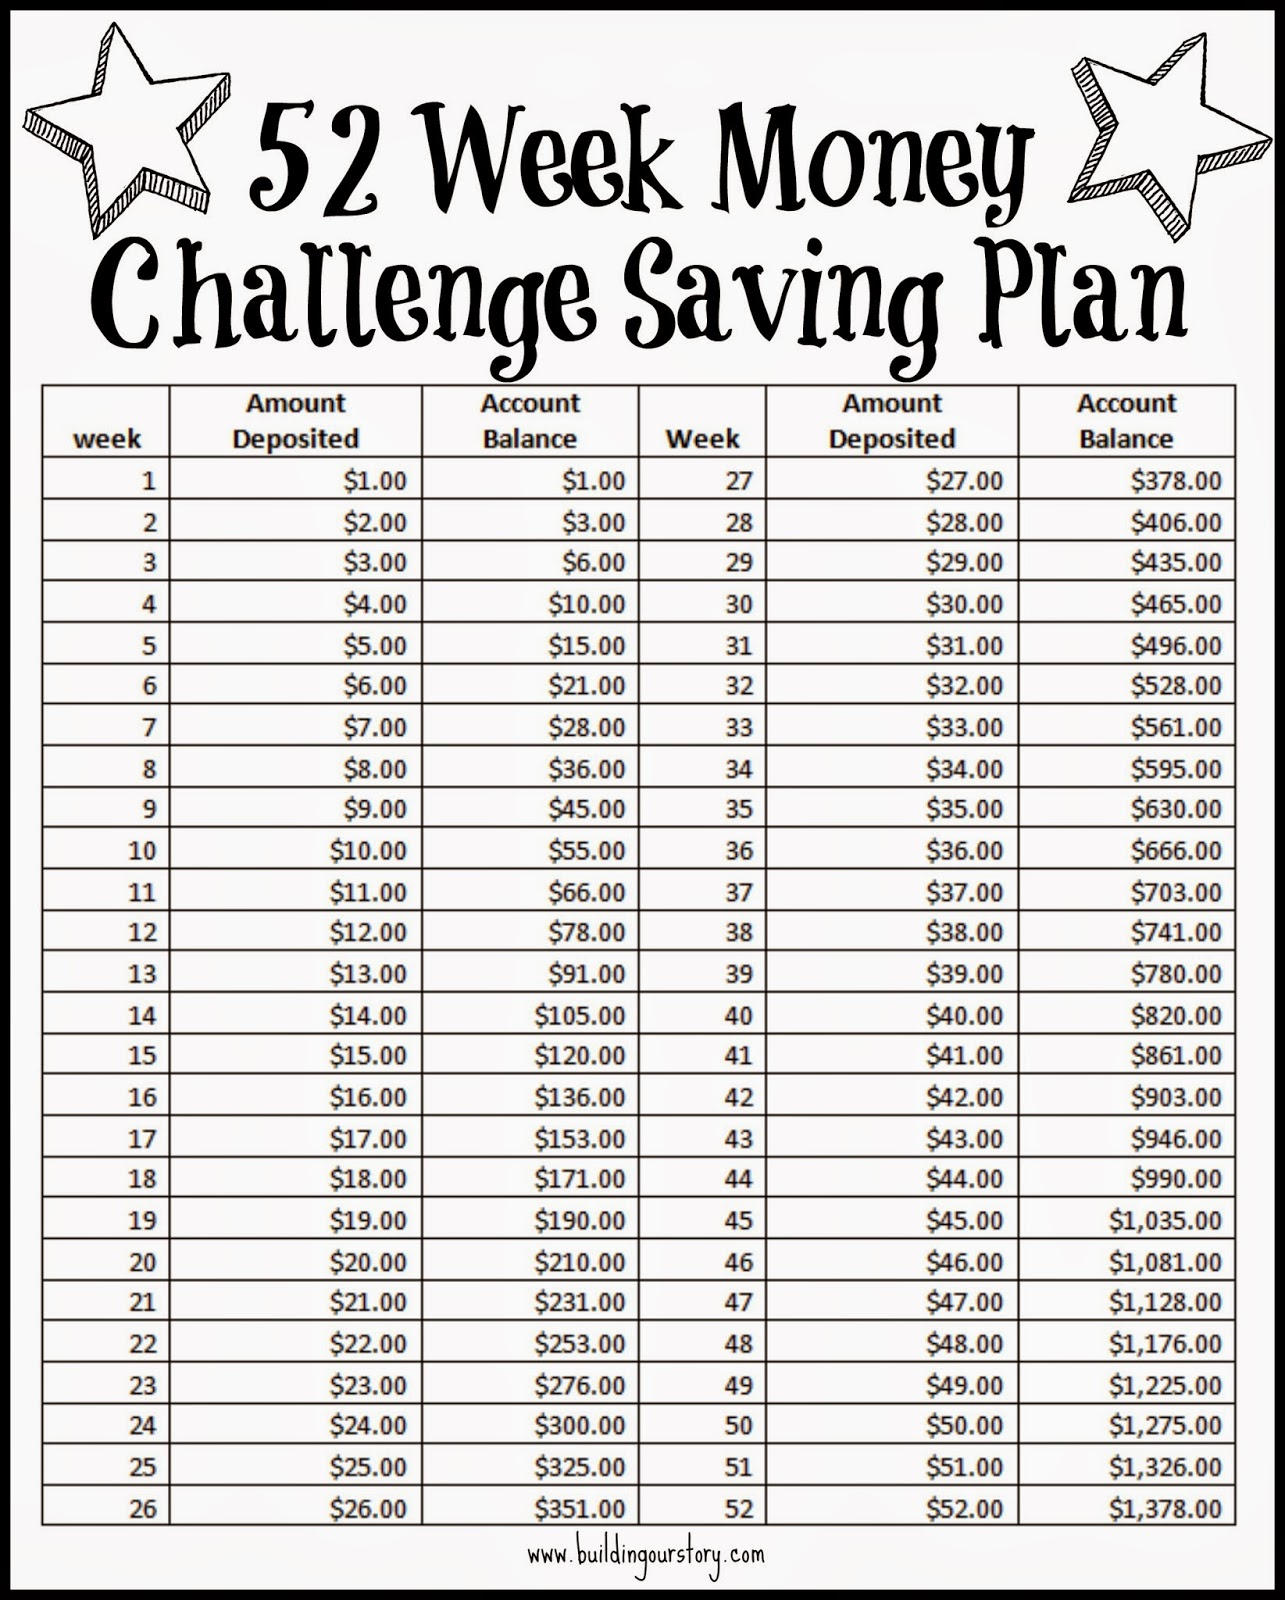 52 week money challenge saving plan free printable for Best ways to save money when building a house